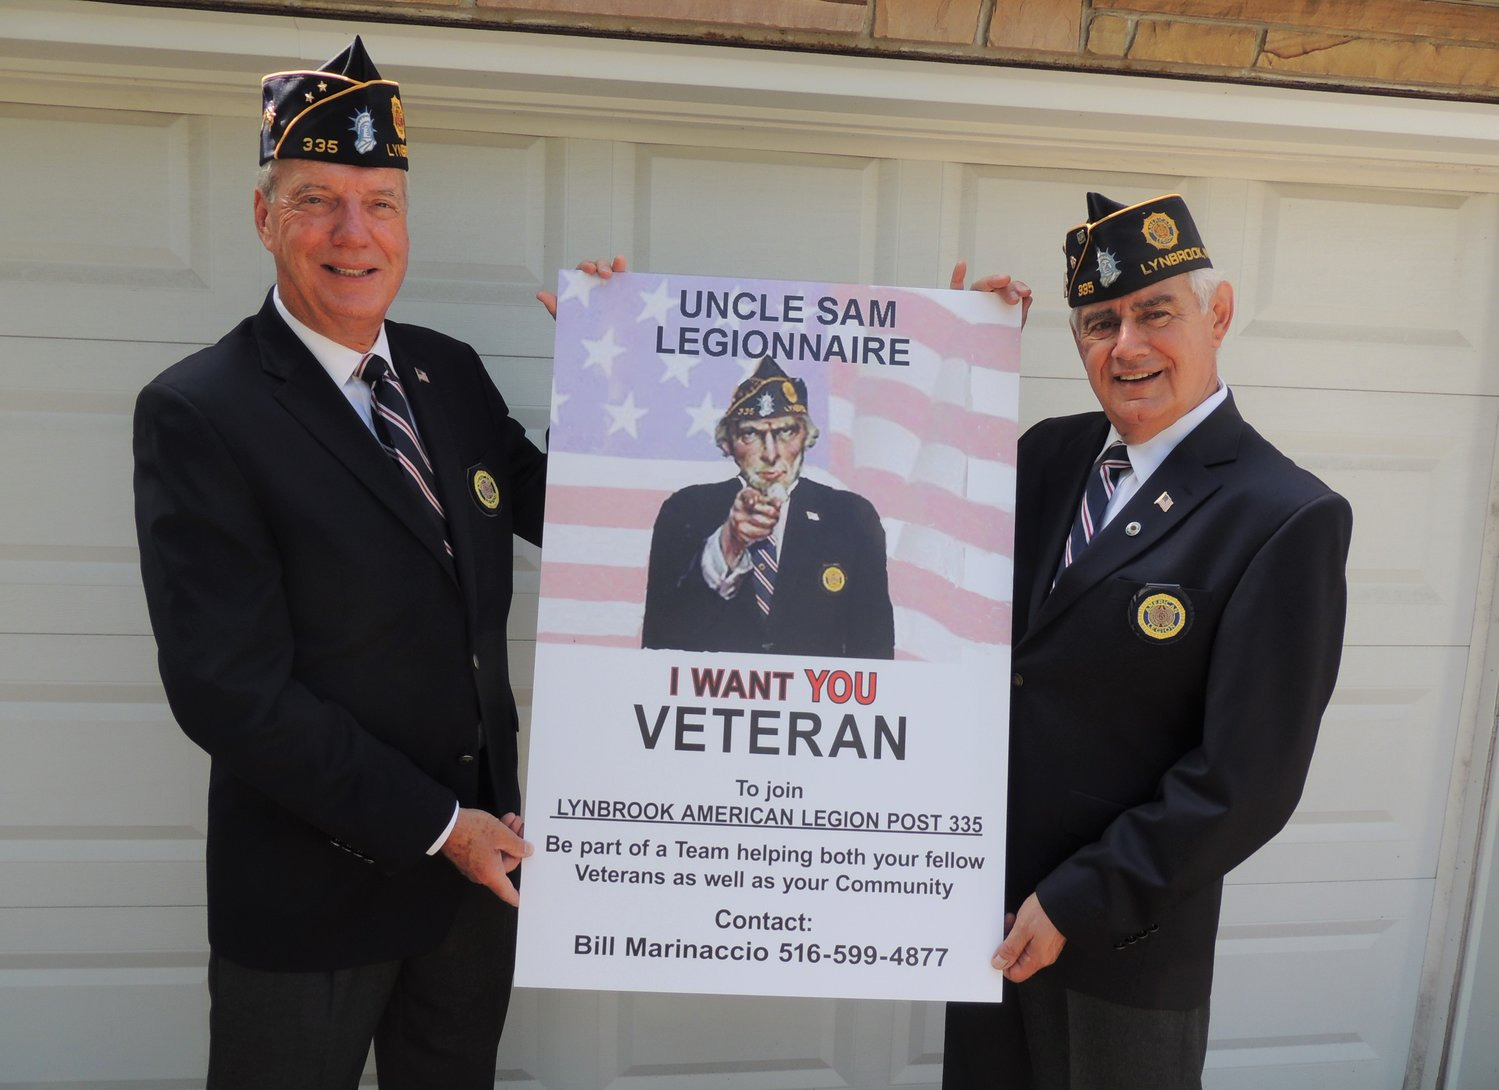 Lynbrook American Legion Post 335, which is celebrating its 100th anniversary this year, has begun a recruitment drive to bring more veterans into the post.